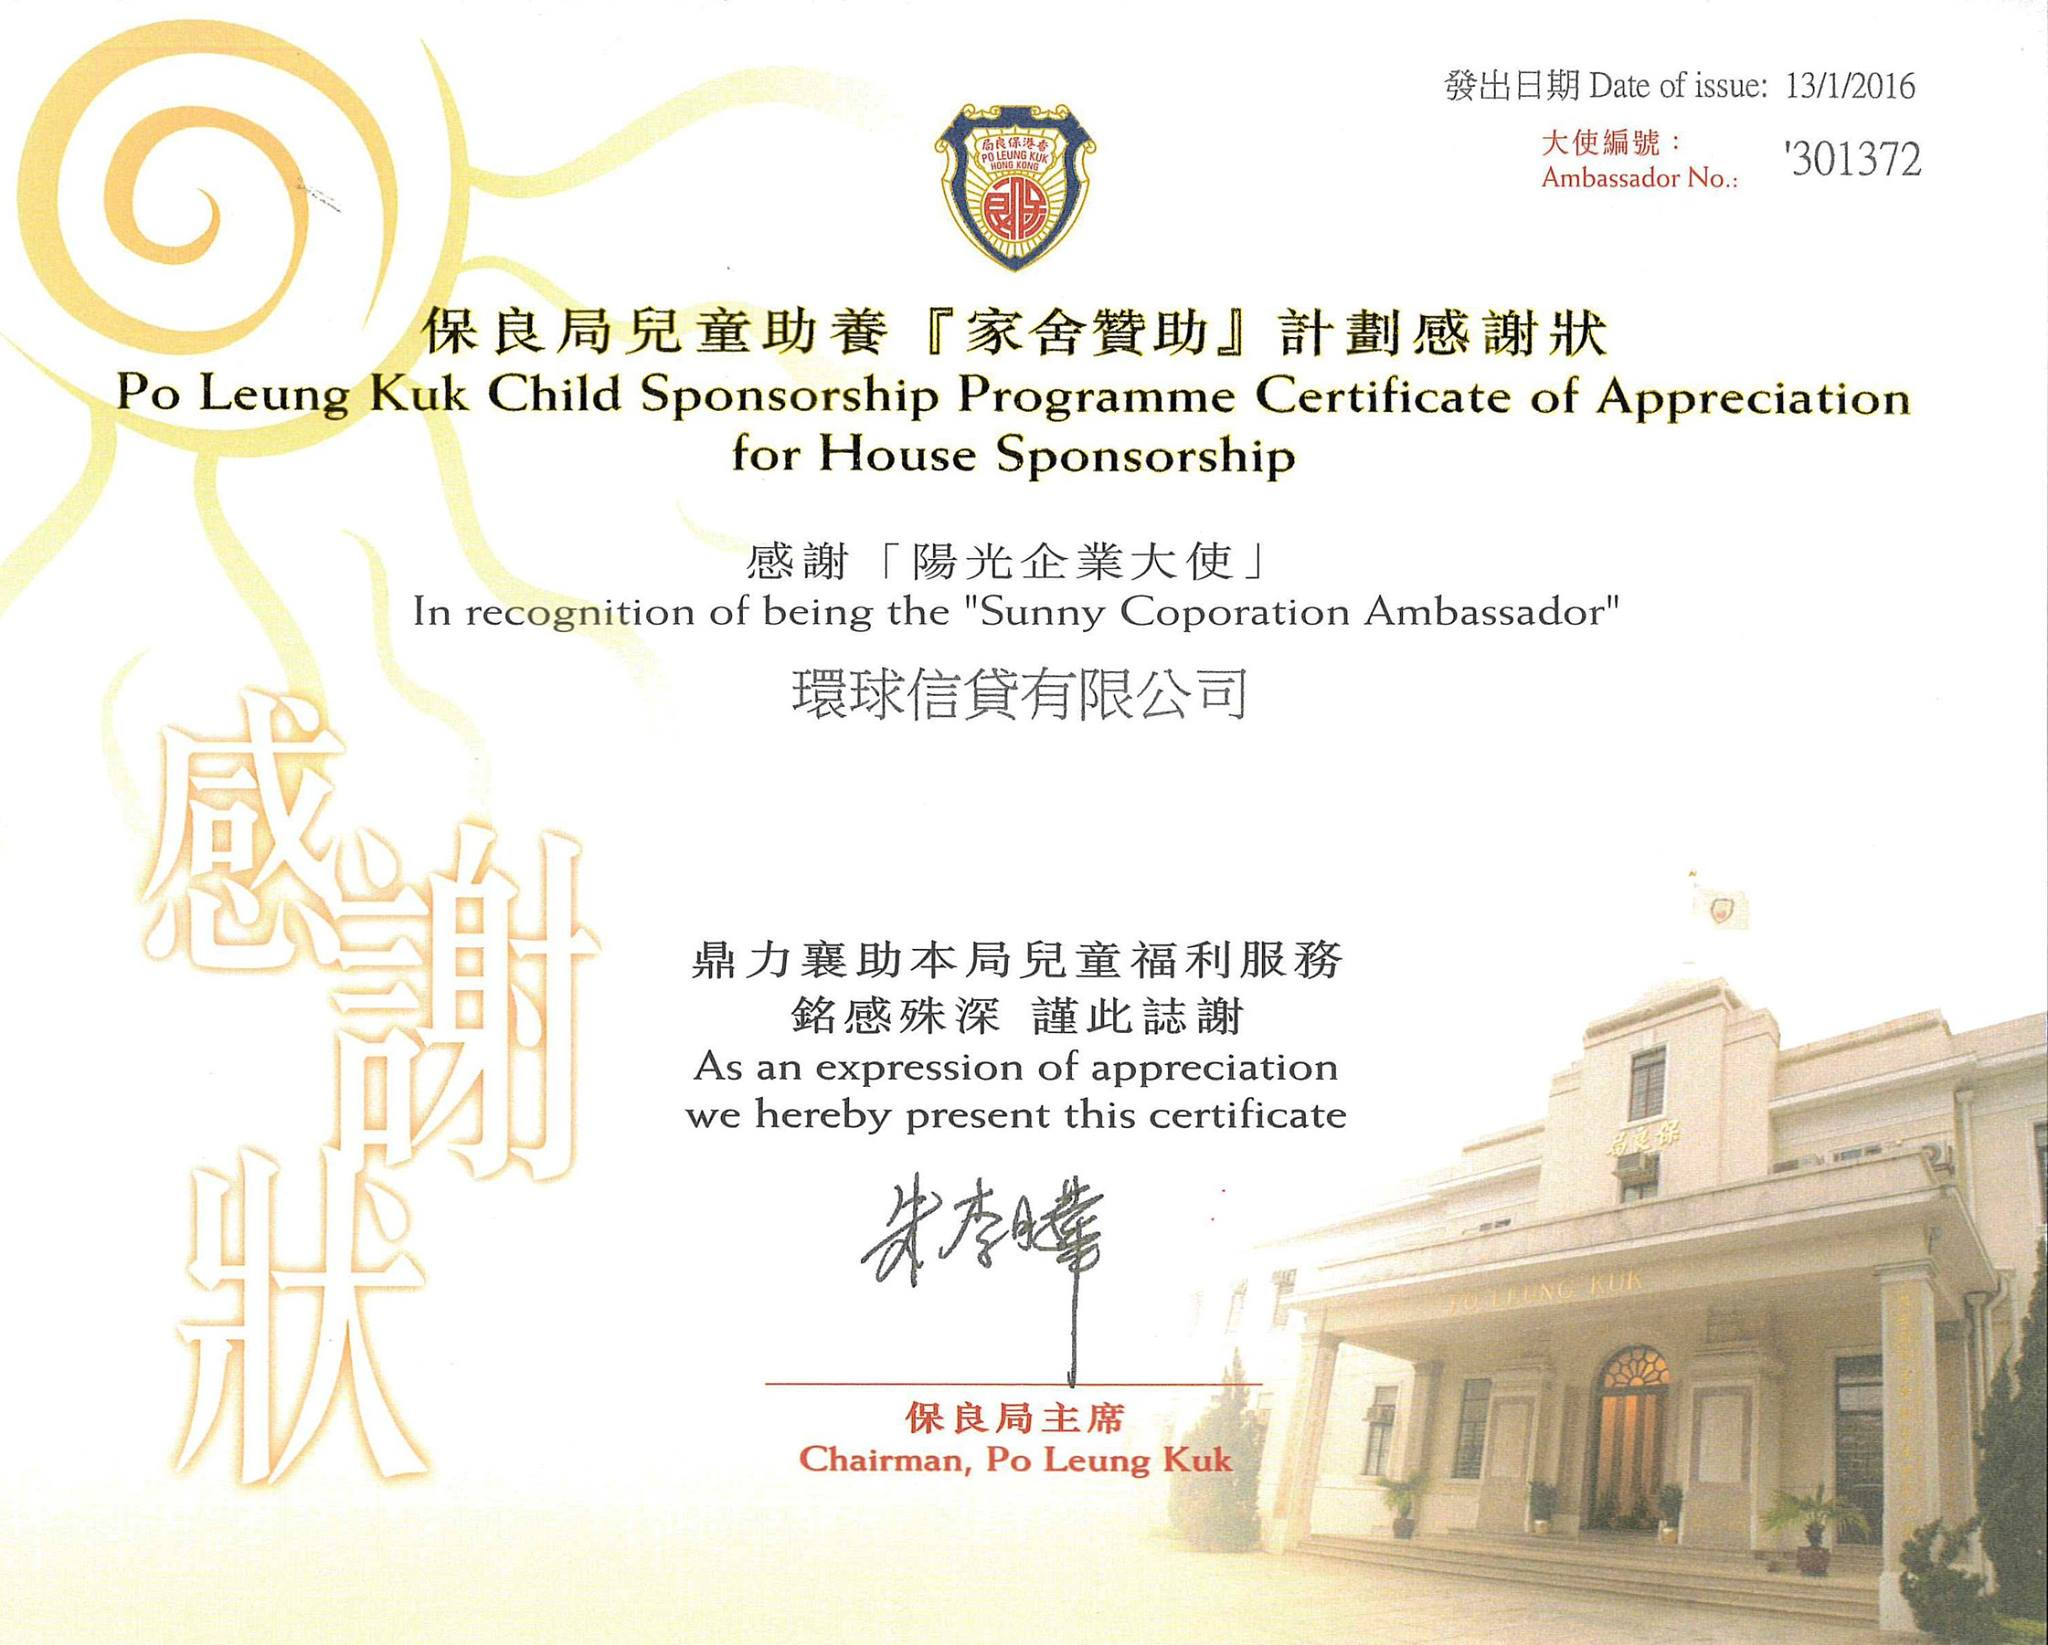 Po leung kuk child sponsorship programme certificate of po leung kuk child sponsorship programme certificate of appreciation of house sponsorship sunny coporation ambassador yelopaper